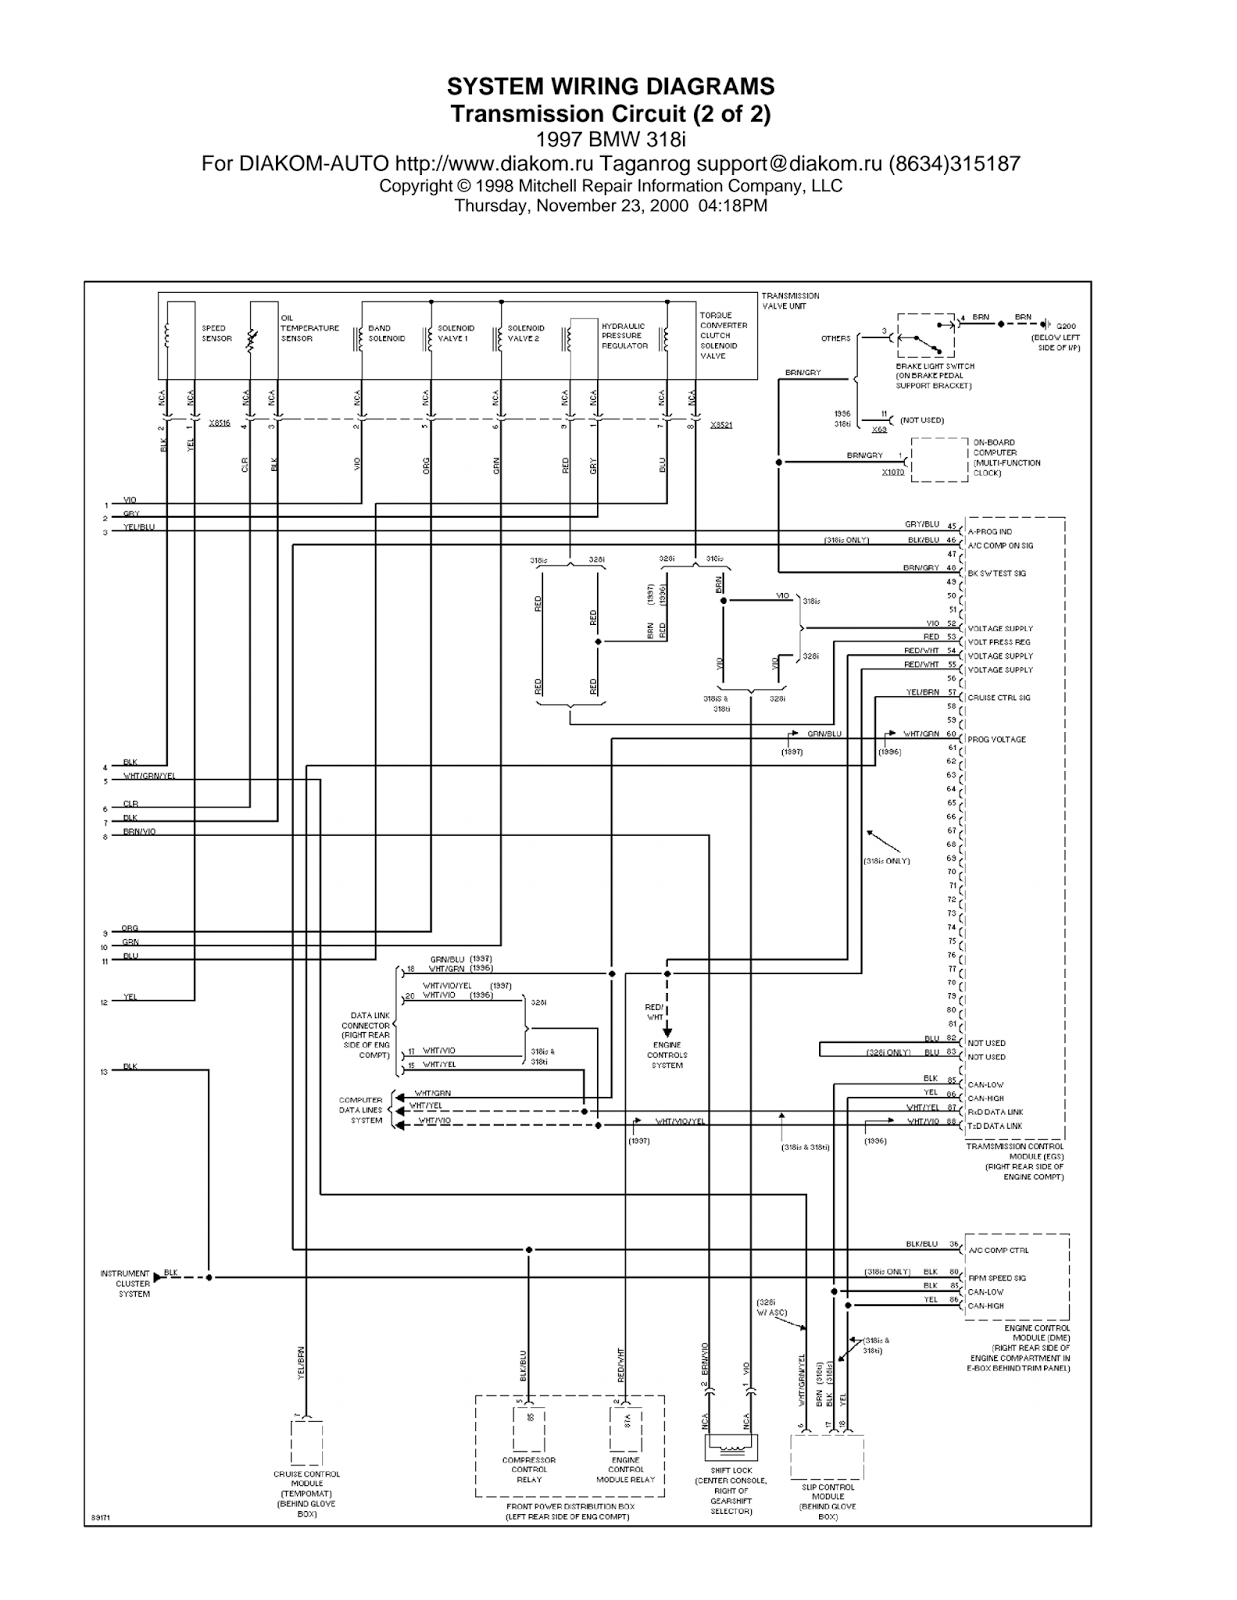 1984 bmw wiring diagrams - wiring images 1984 bmw 318i wiring diagrams 1984 bmw 318i fuse box diagram